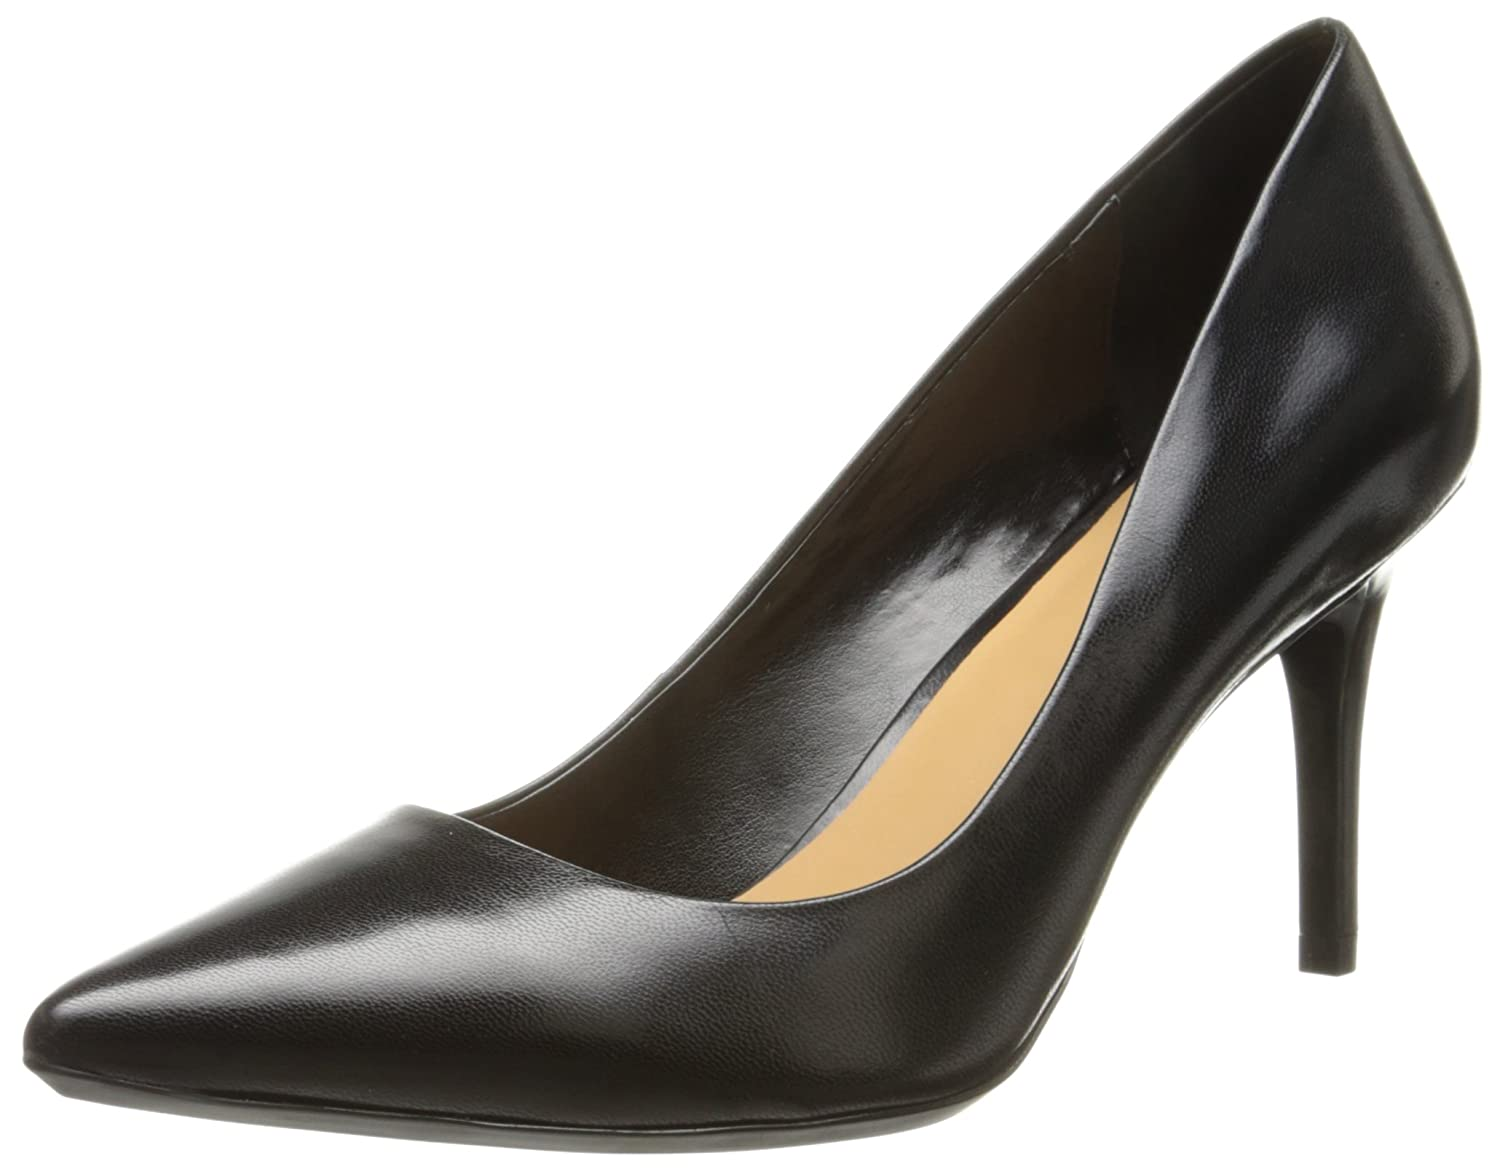 Calvin Klein Women's Gayle Pump B00LH02ODS 8 B(M) US|Black Leather